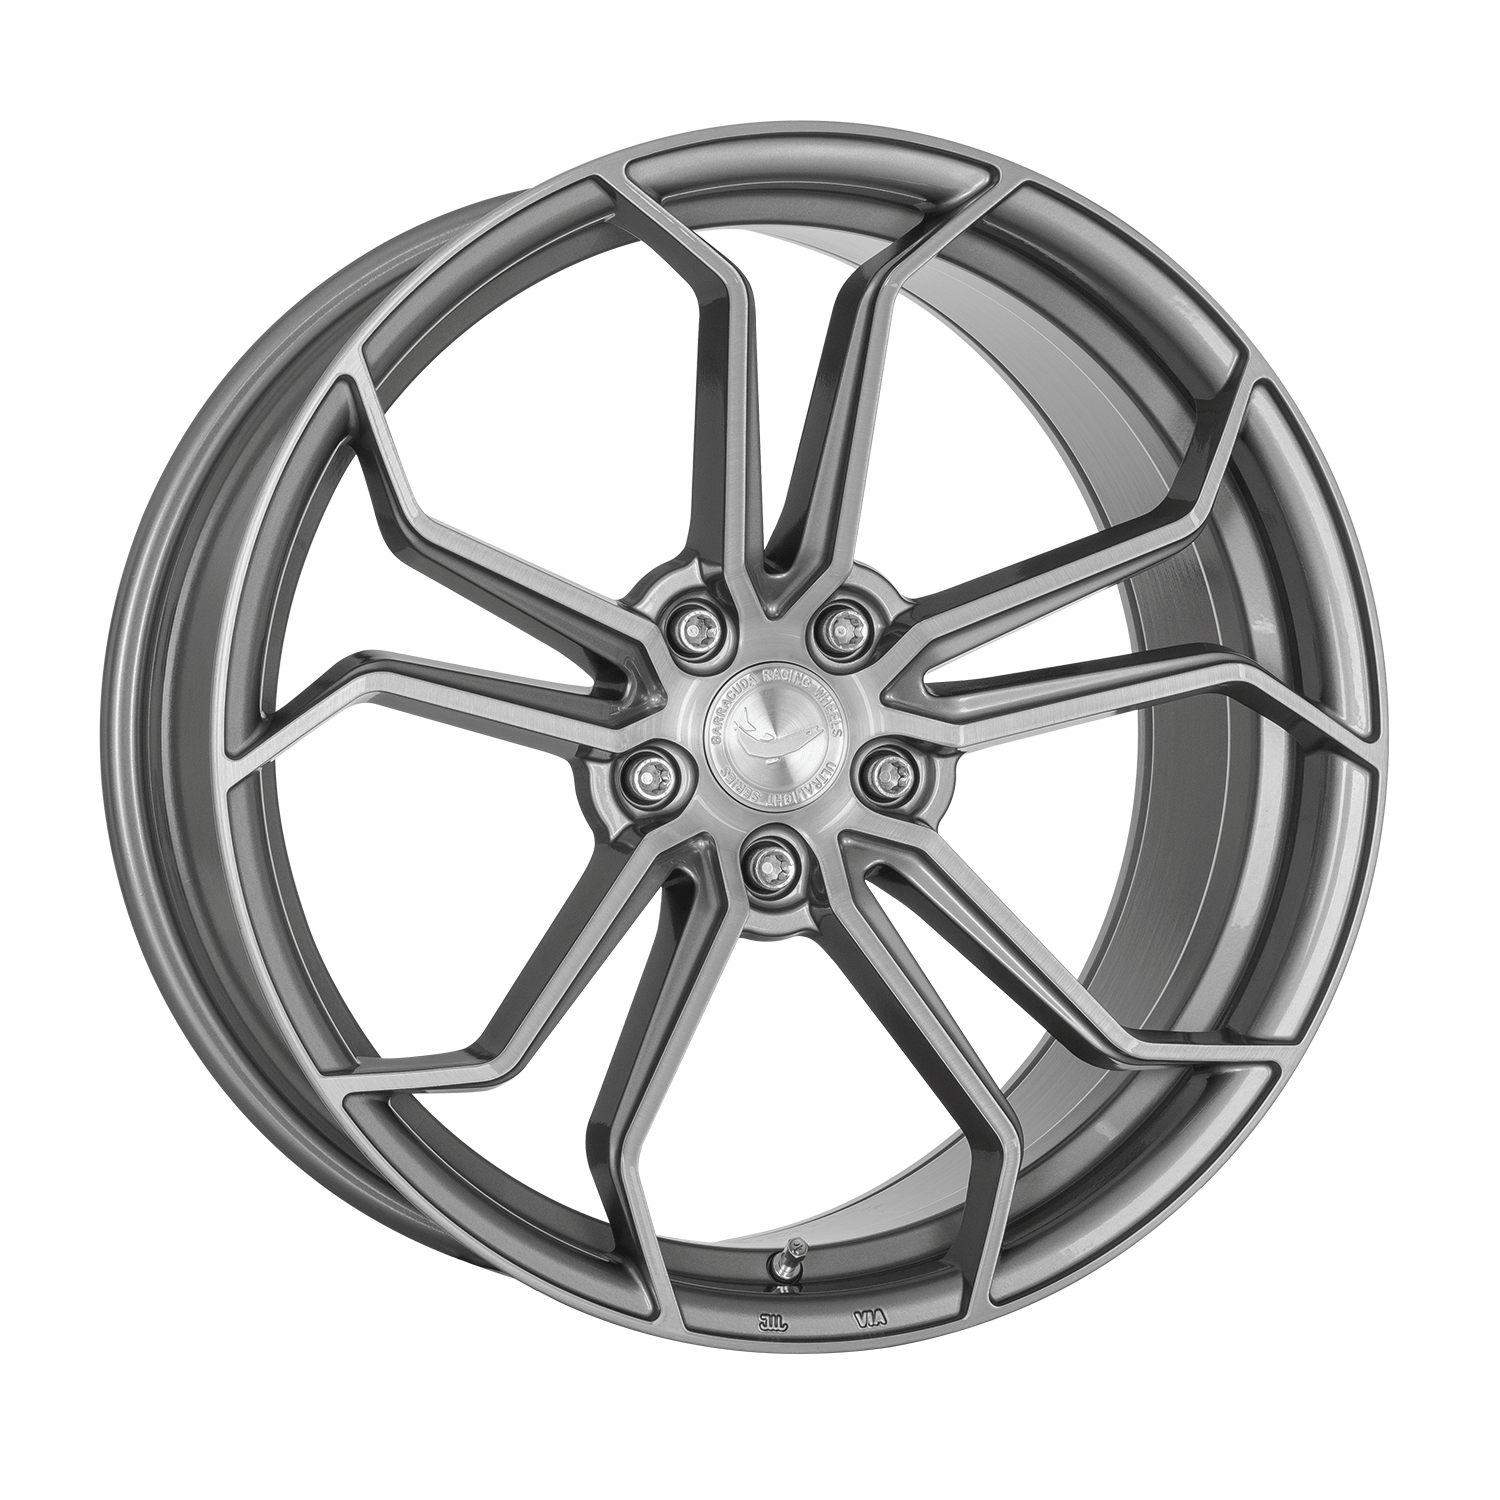 BARRACUDA ULTRALIGHT PROJECT 1.0 Silver brushed - 8,5x20 / 5x108 / ET45, RHPRO185045N/SBS